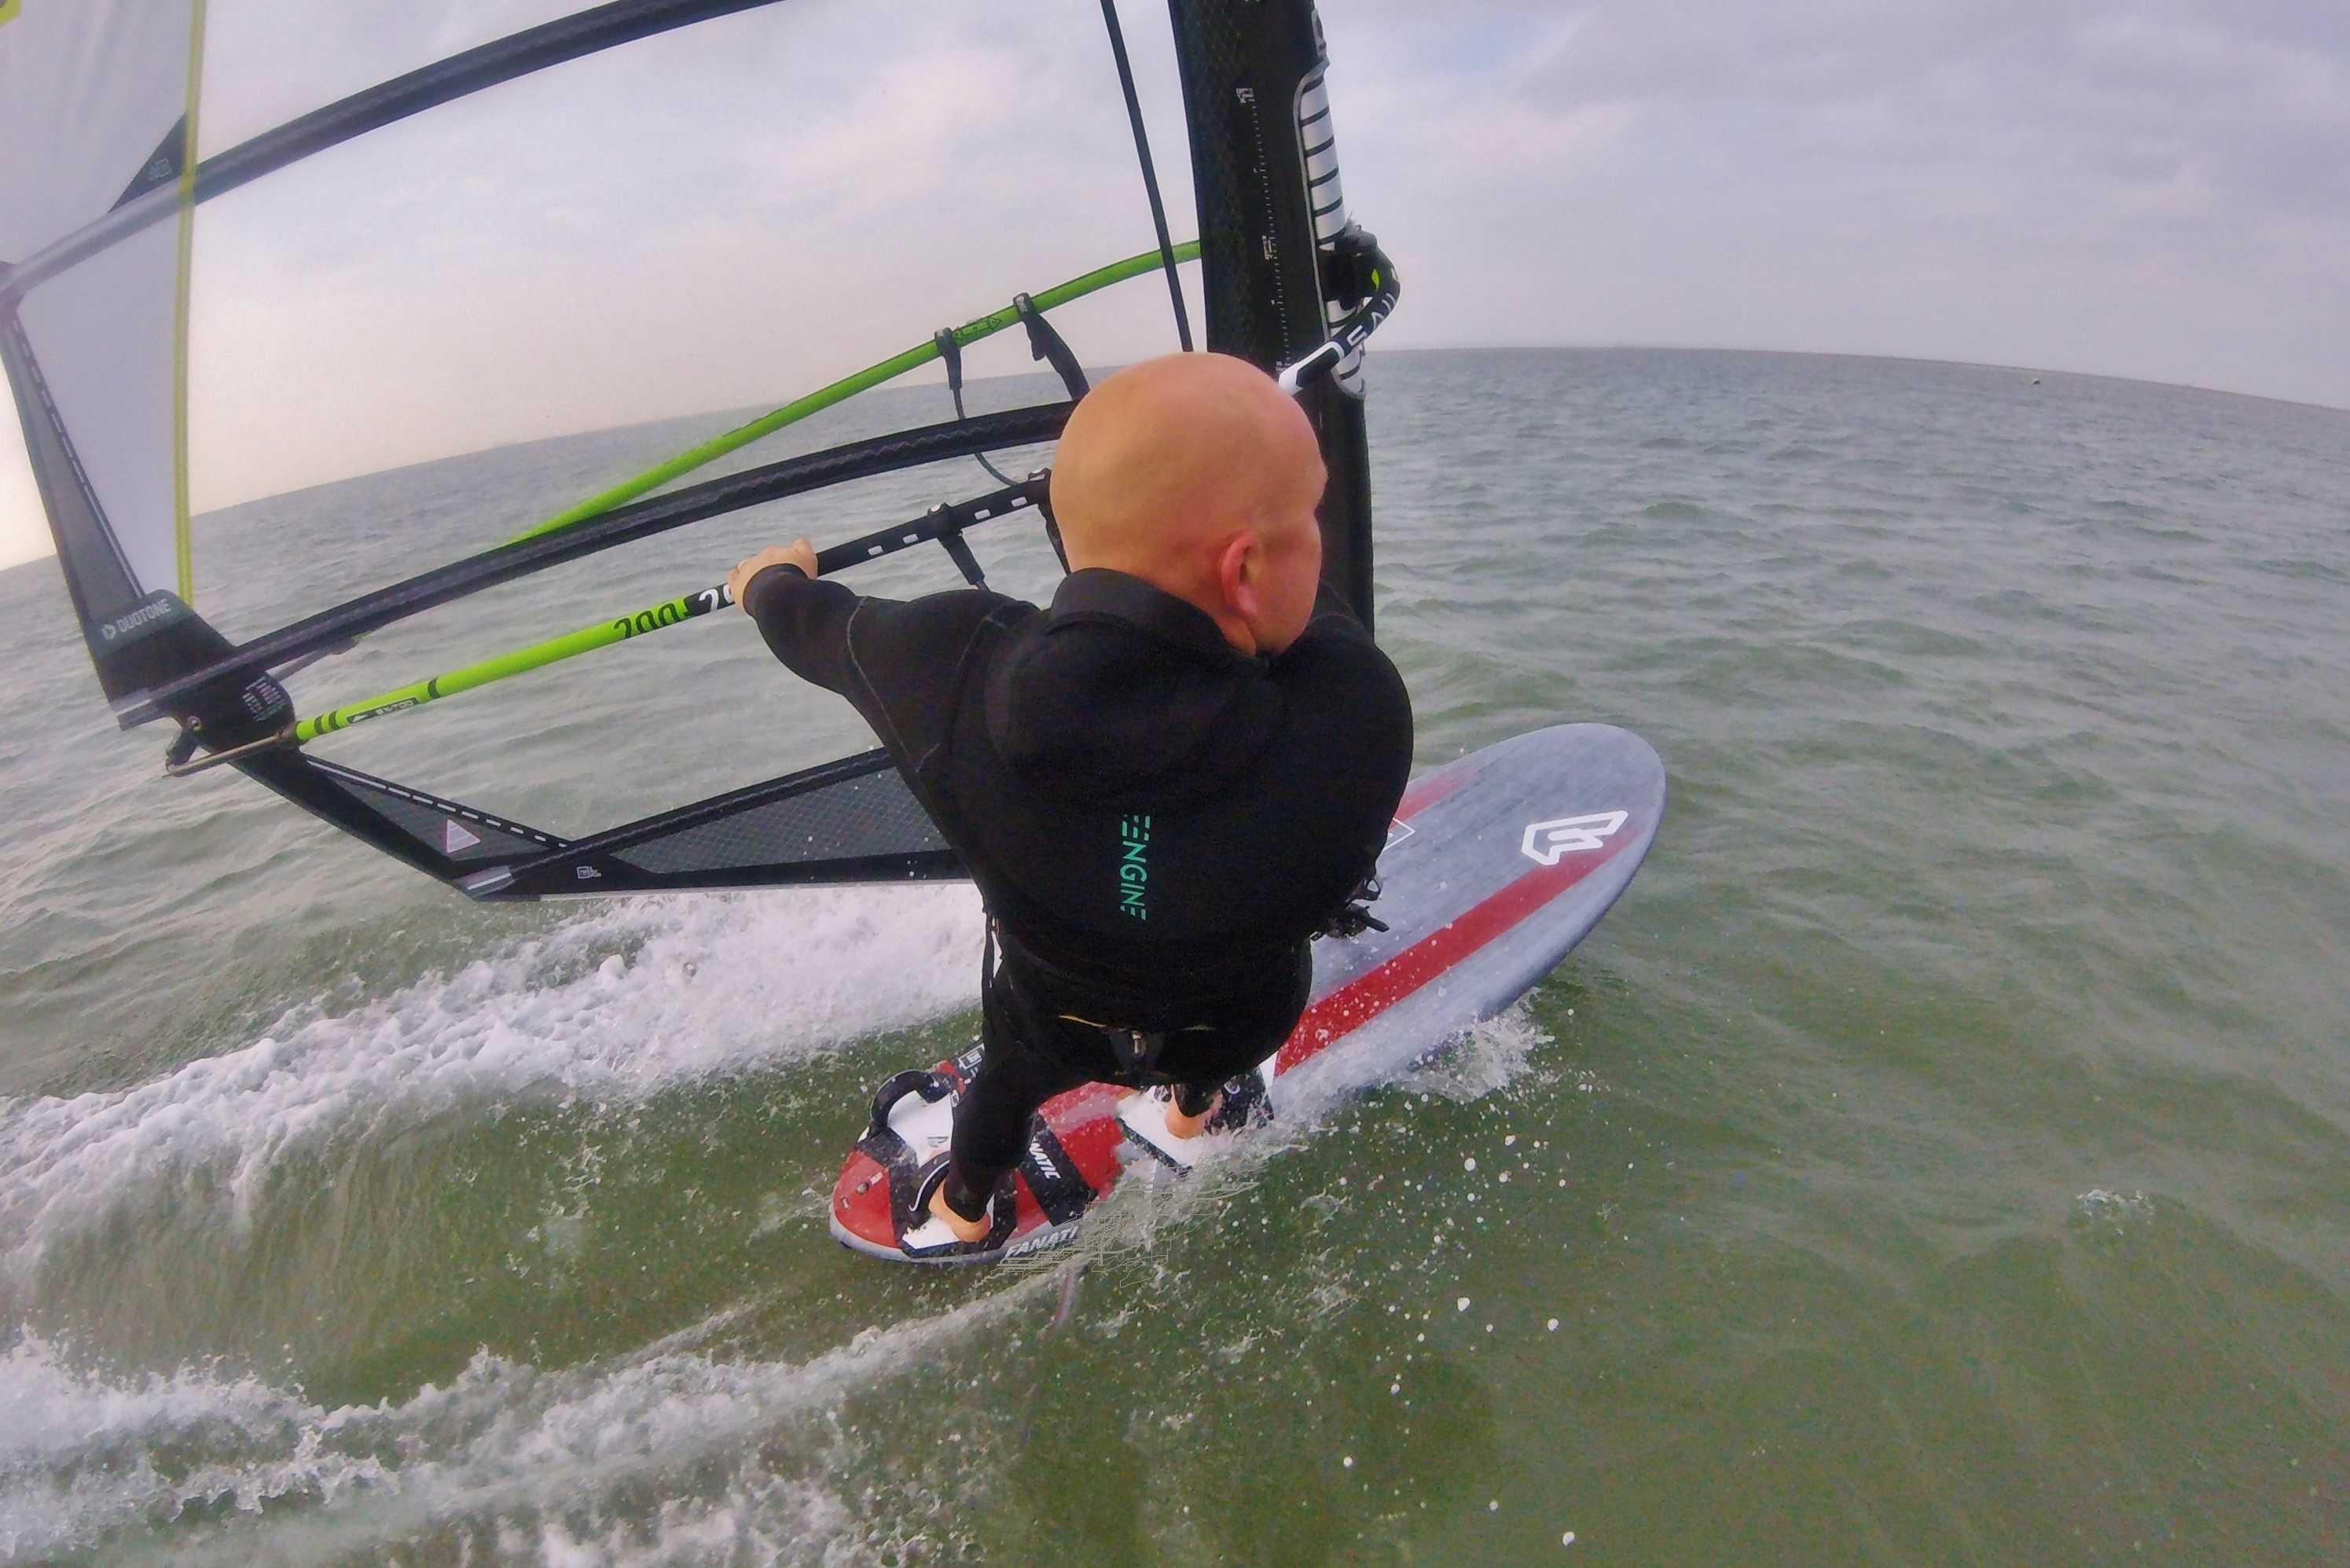 Access All Areas Fanatic Jag 135l 2019 Ltd Windsurf Board Test Windsurfing Uk Magazine